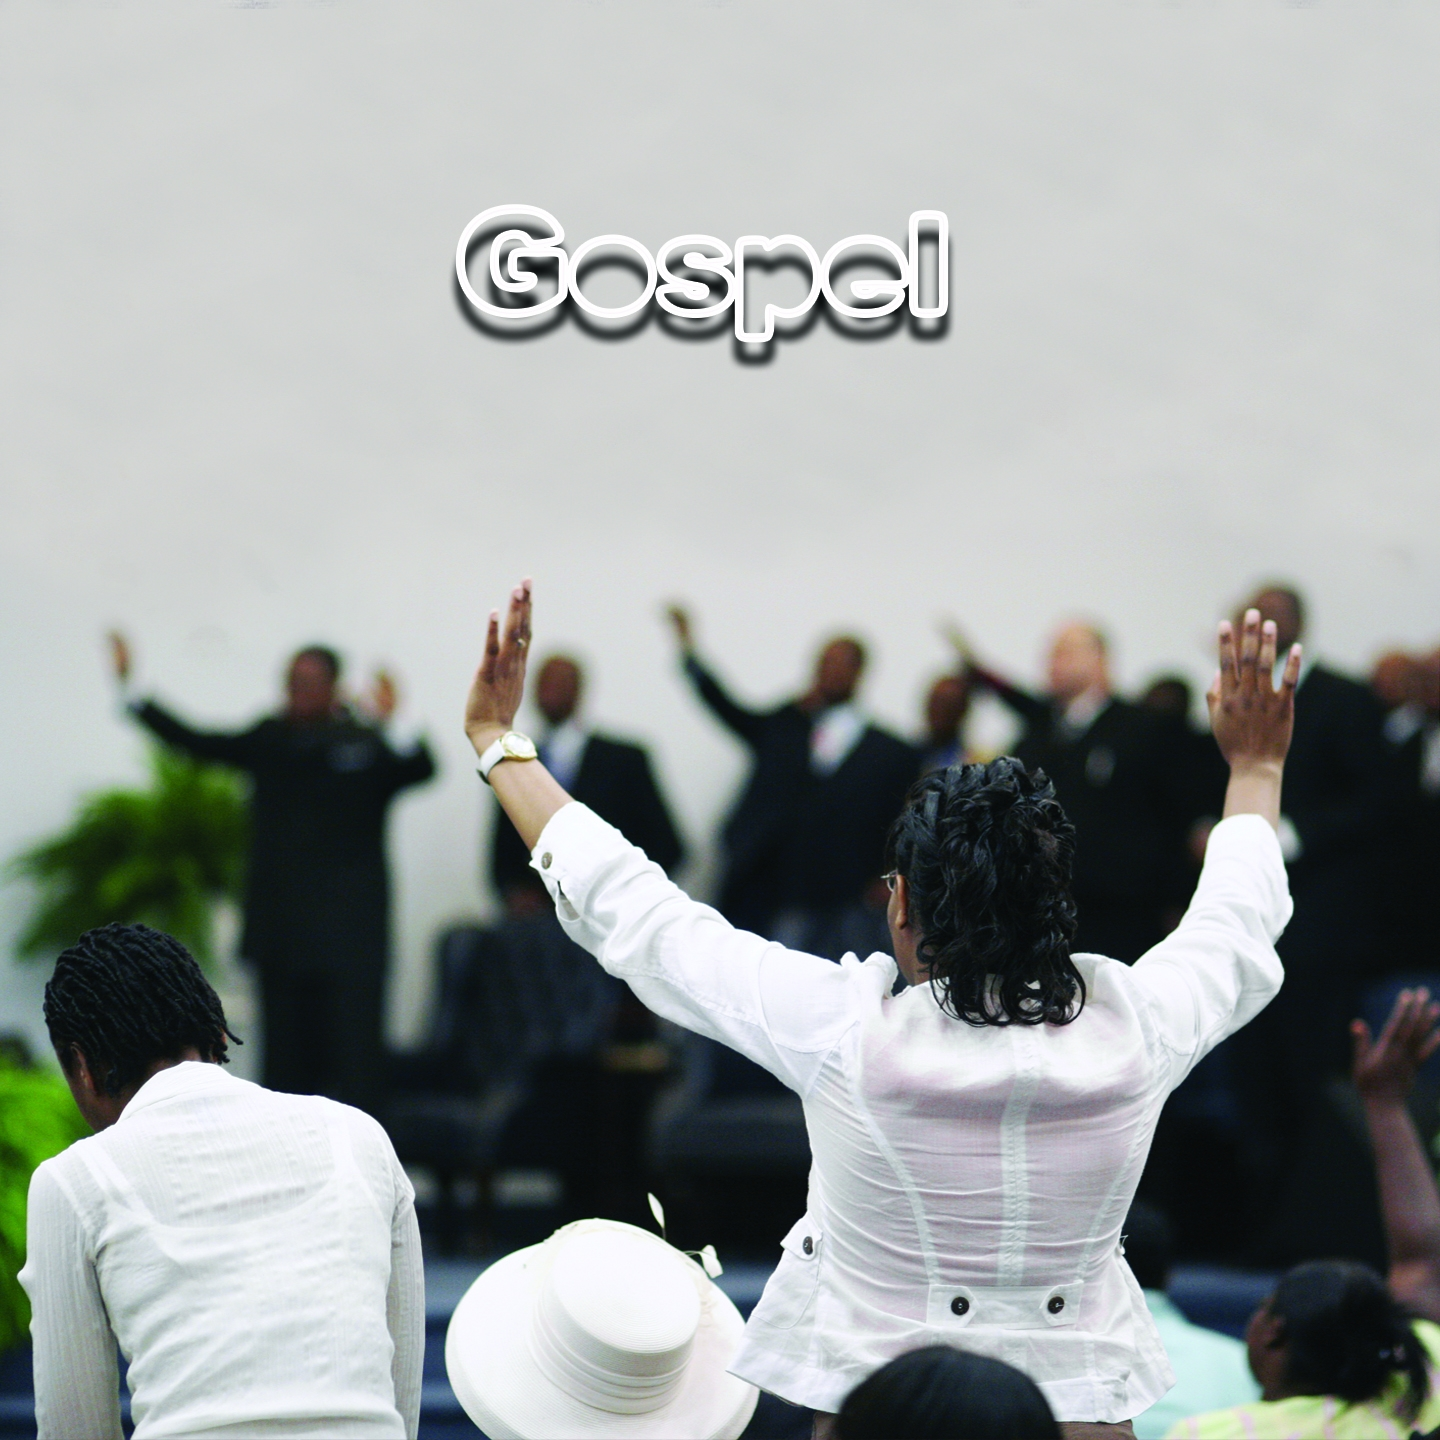 0 - Gospel (Christmas Atmosphere)